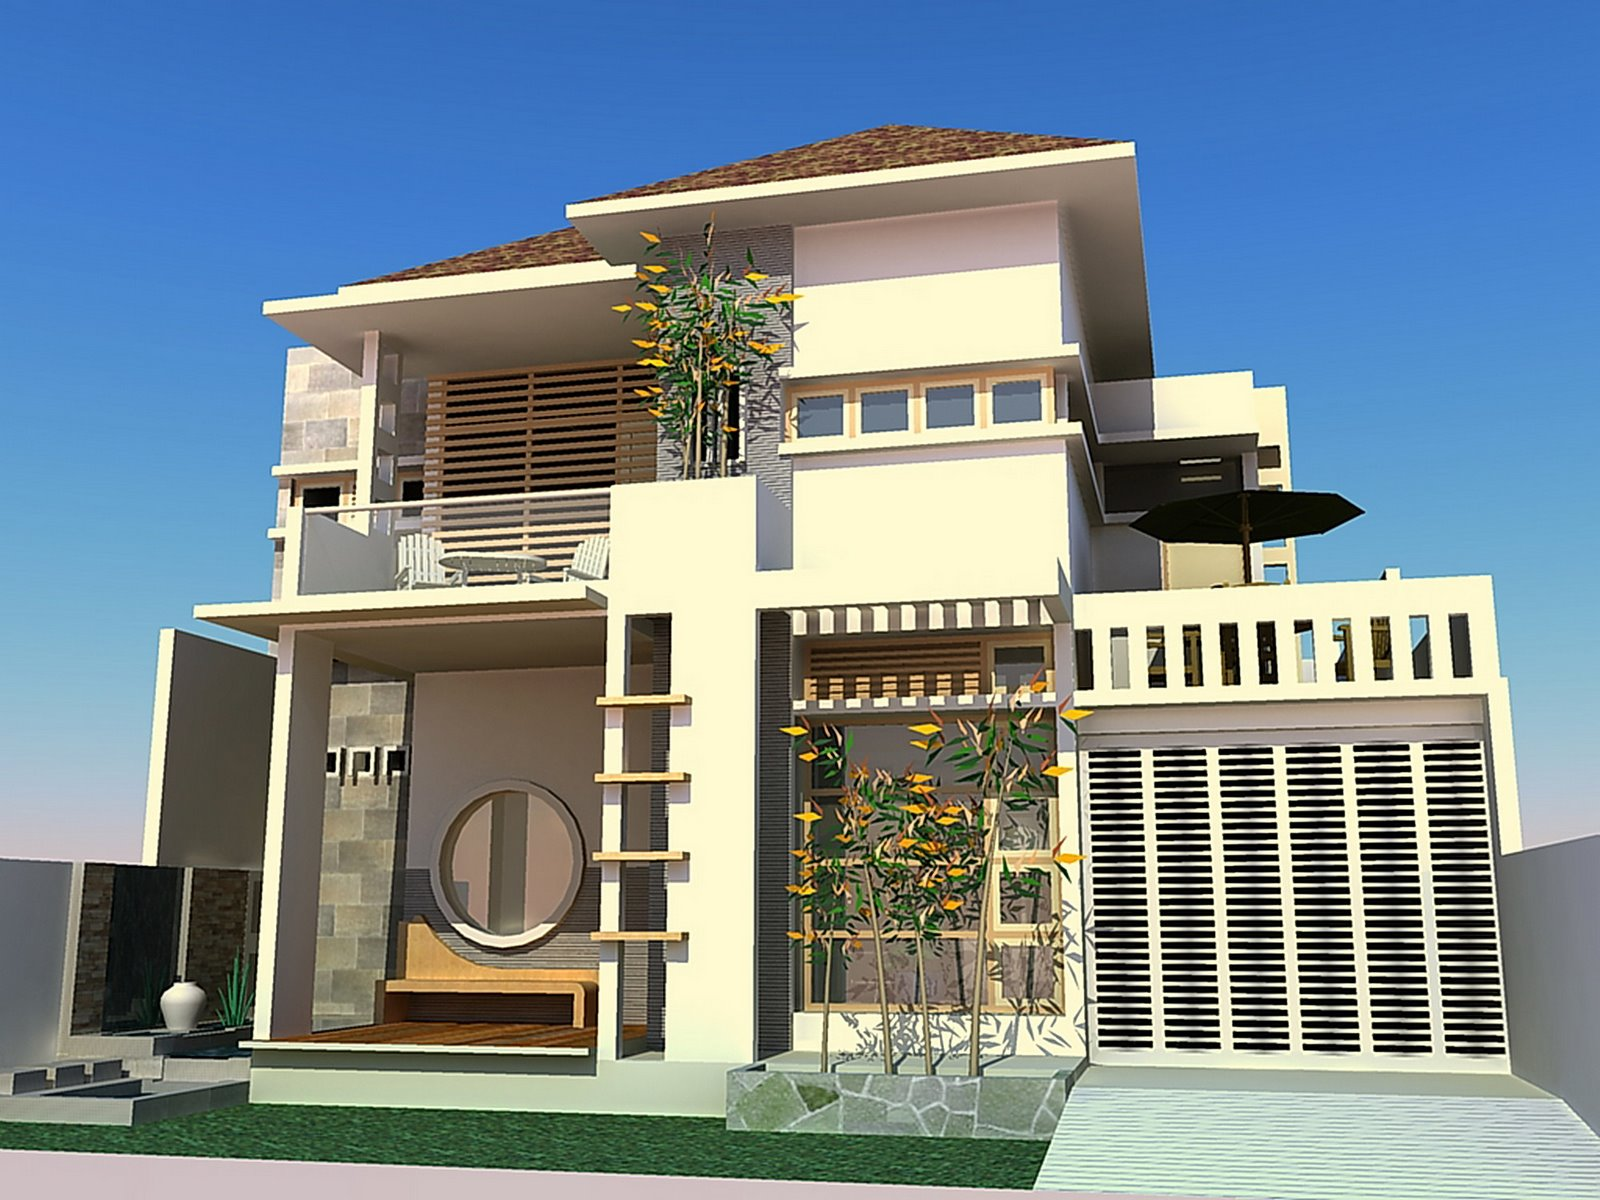 15 Remarkable Modern House Designs Home Design Lover DESIGNS HOUSE